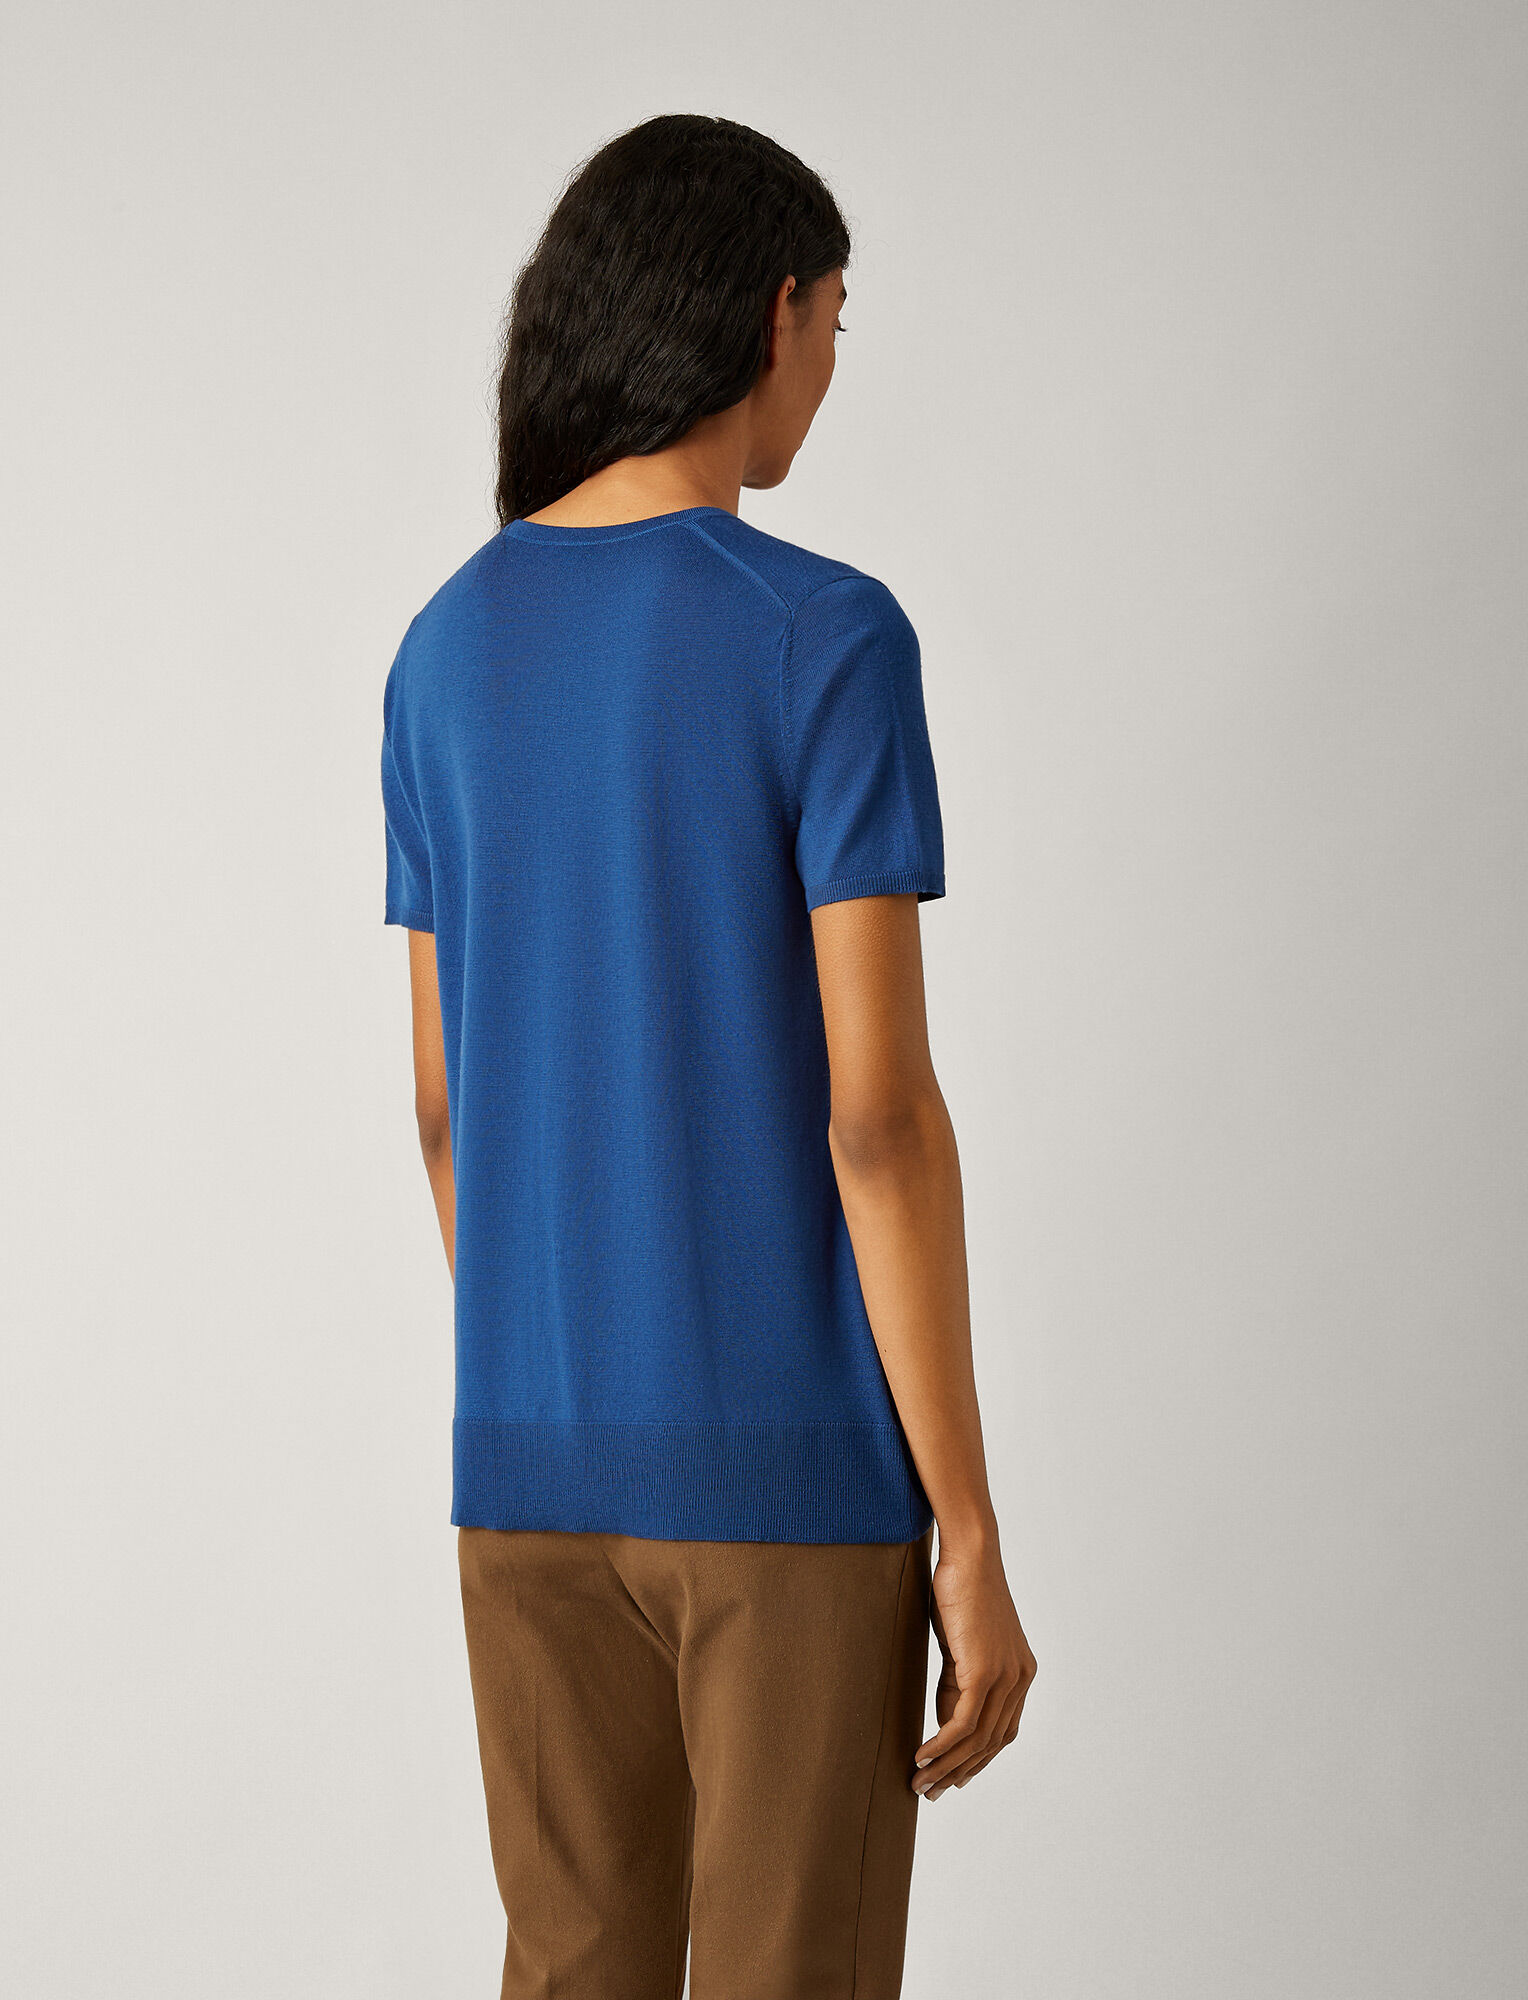 Joseph, Fine Merinos Knit Tee, in INK